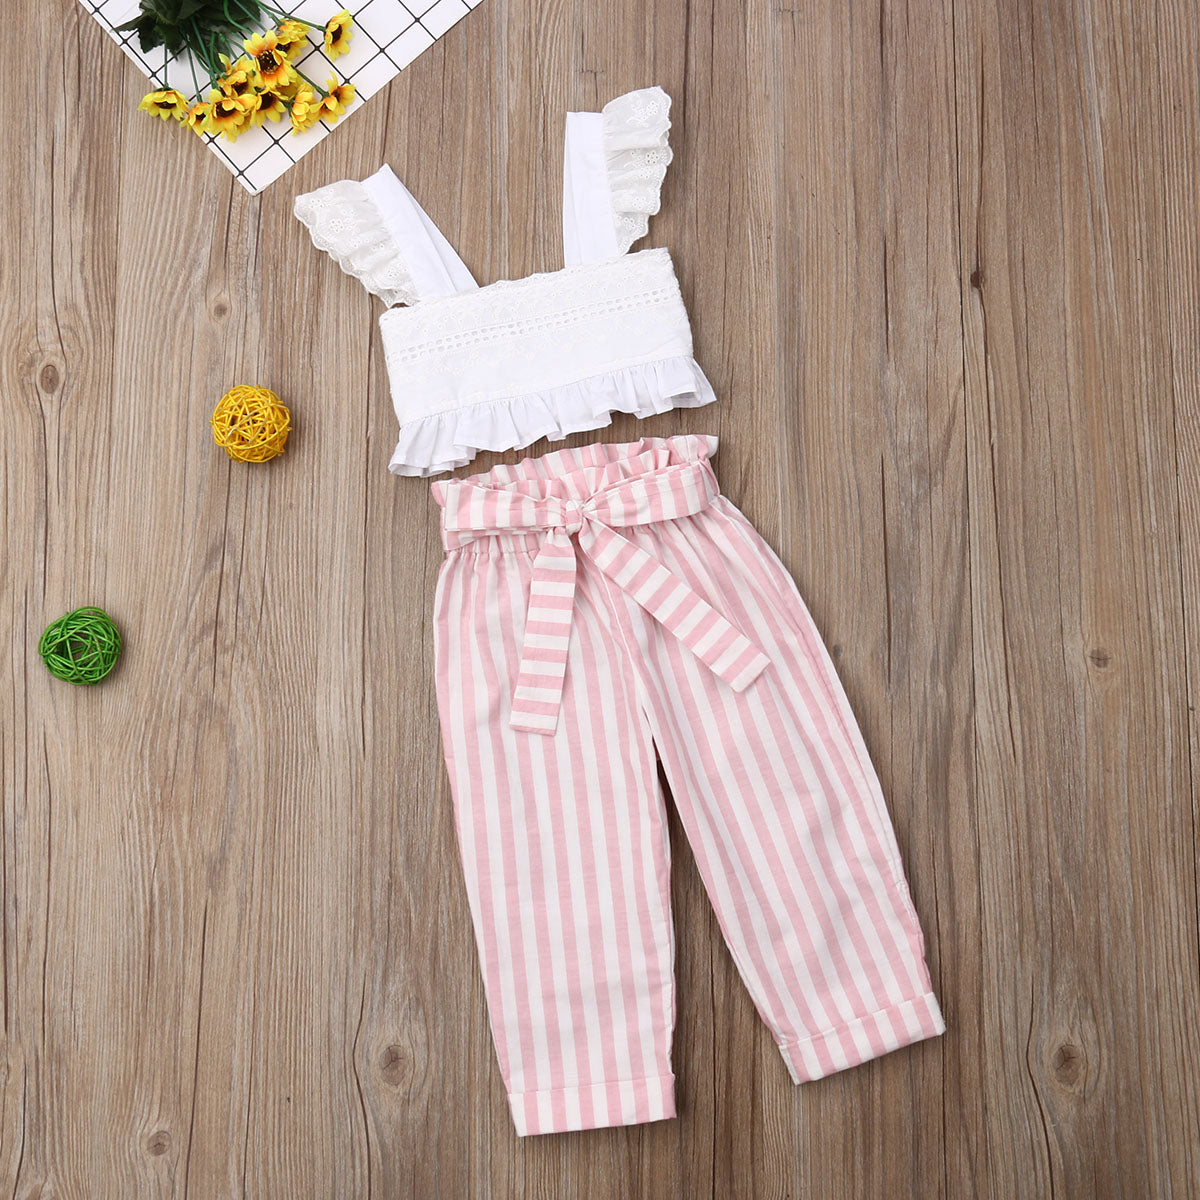 Eyelet Stripe Toddler Set